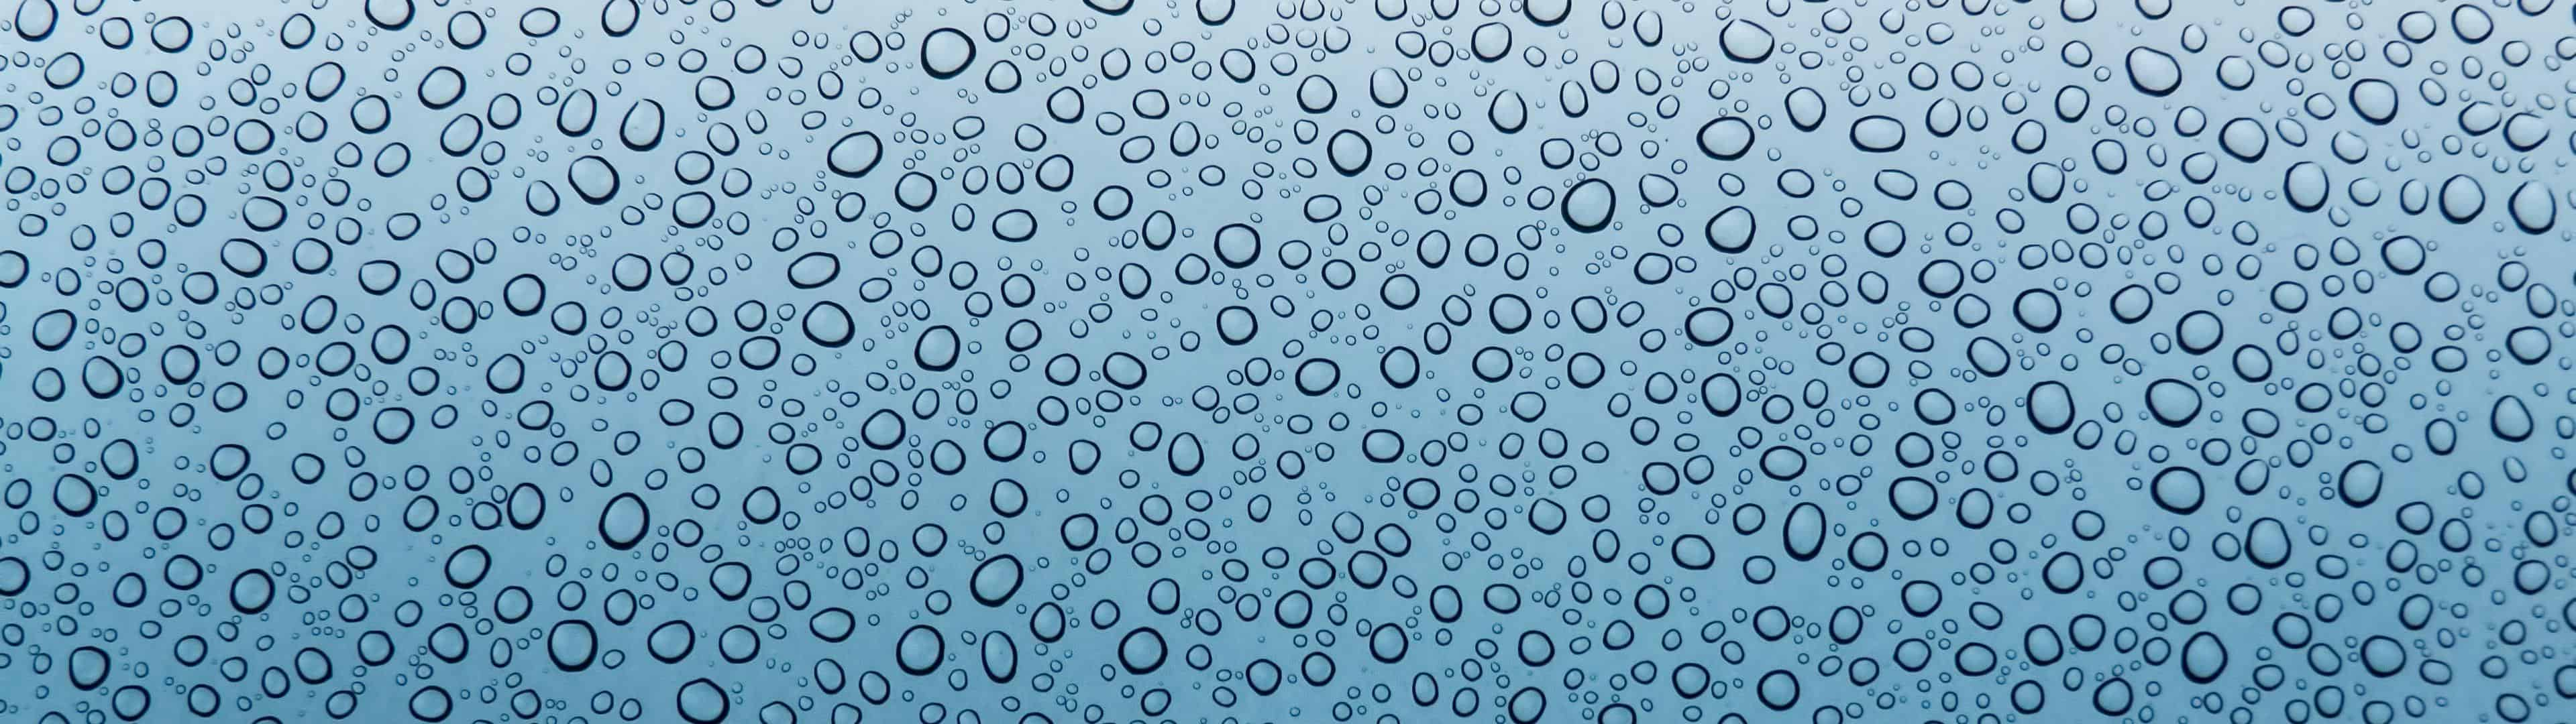 water droplets dual monitor wallpaper